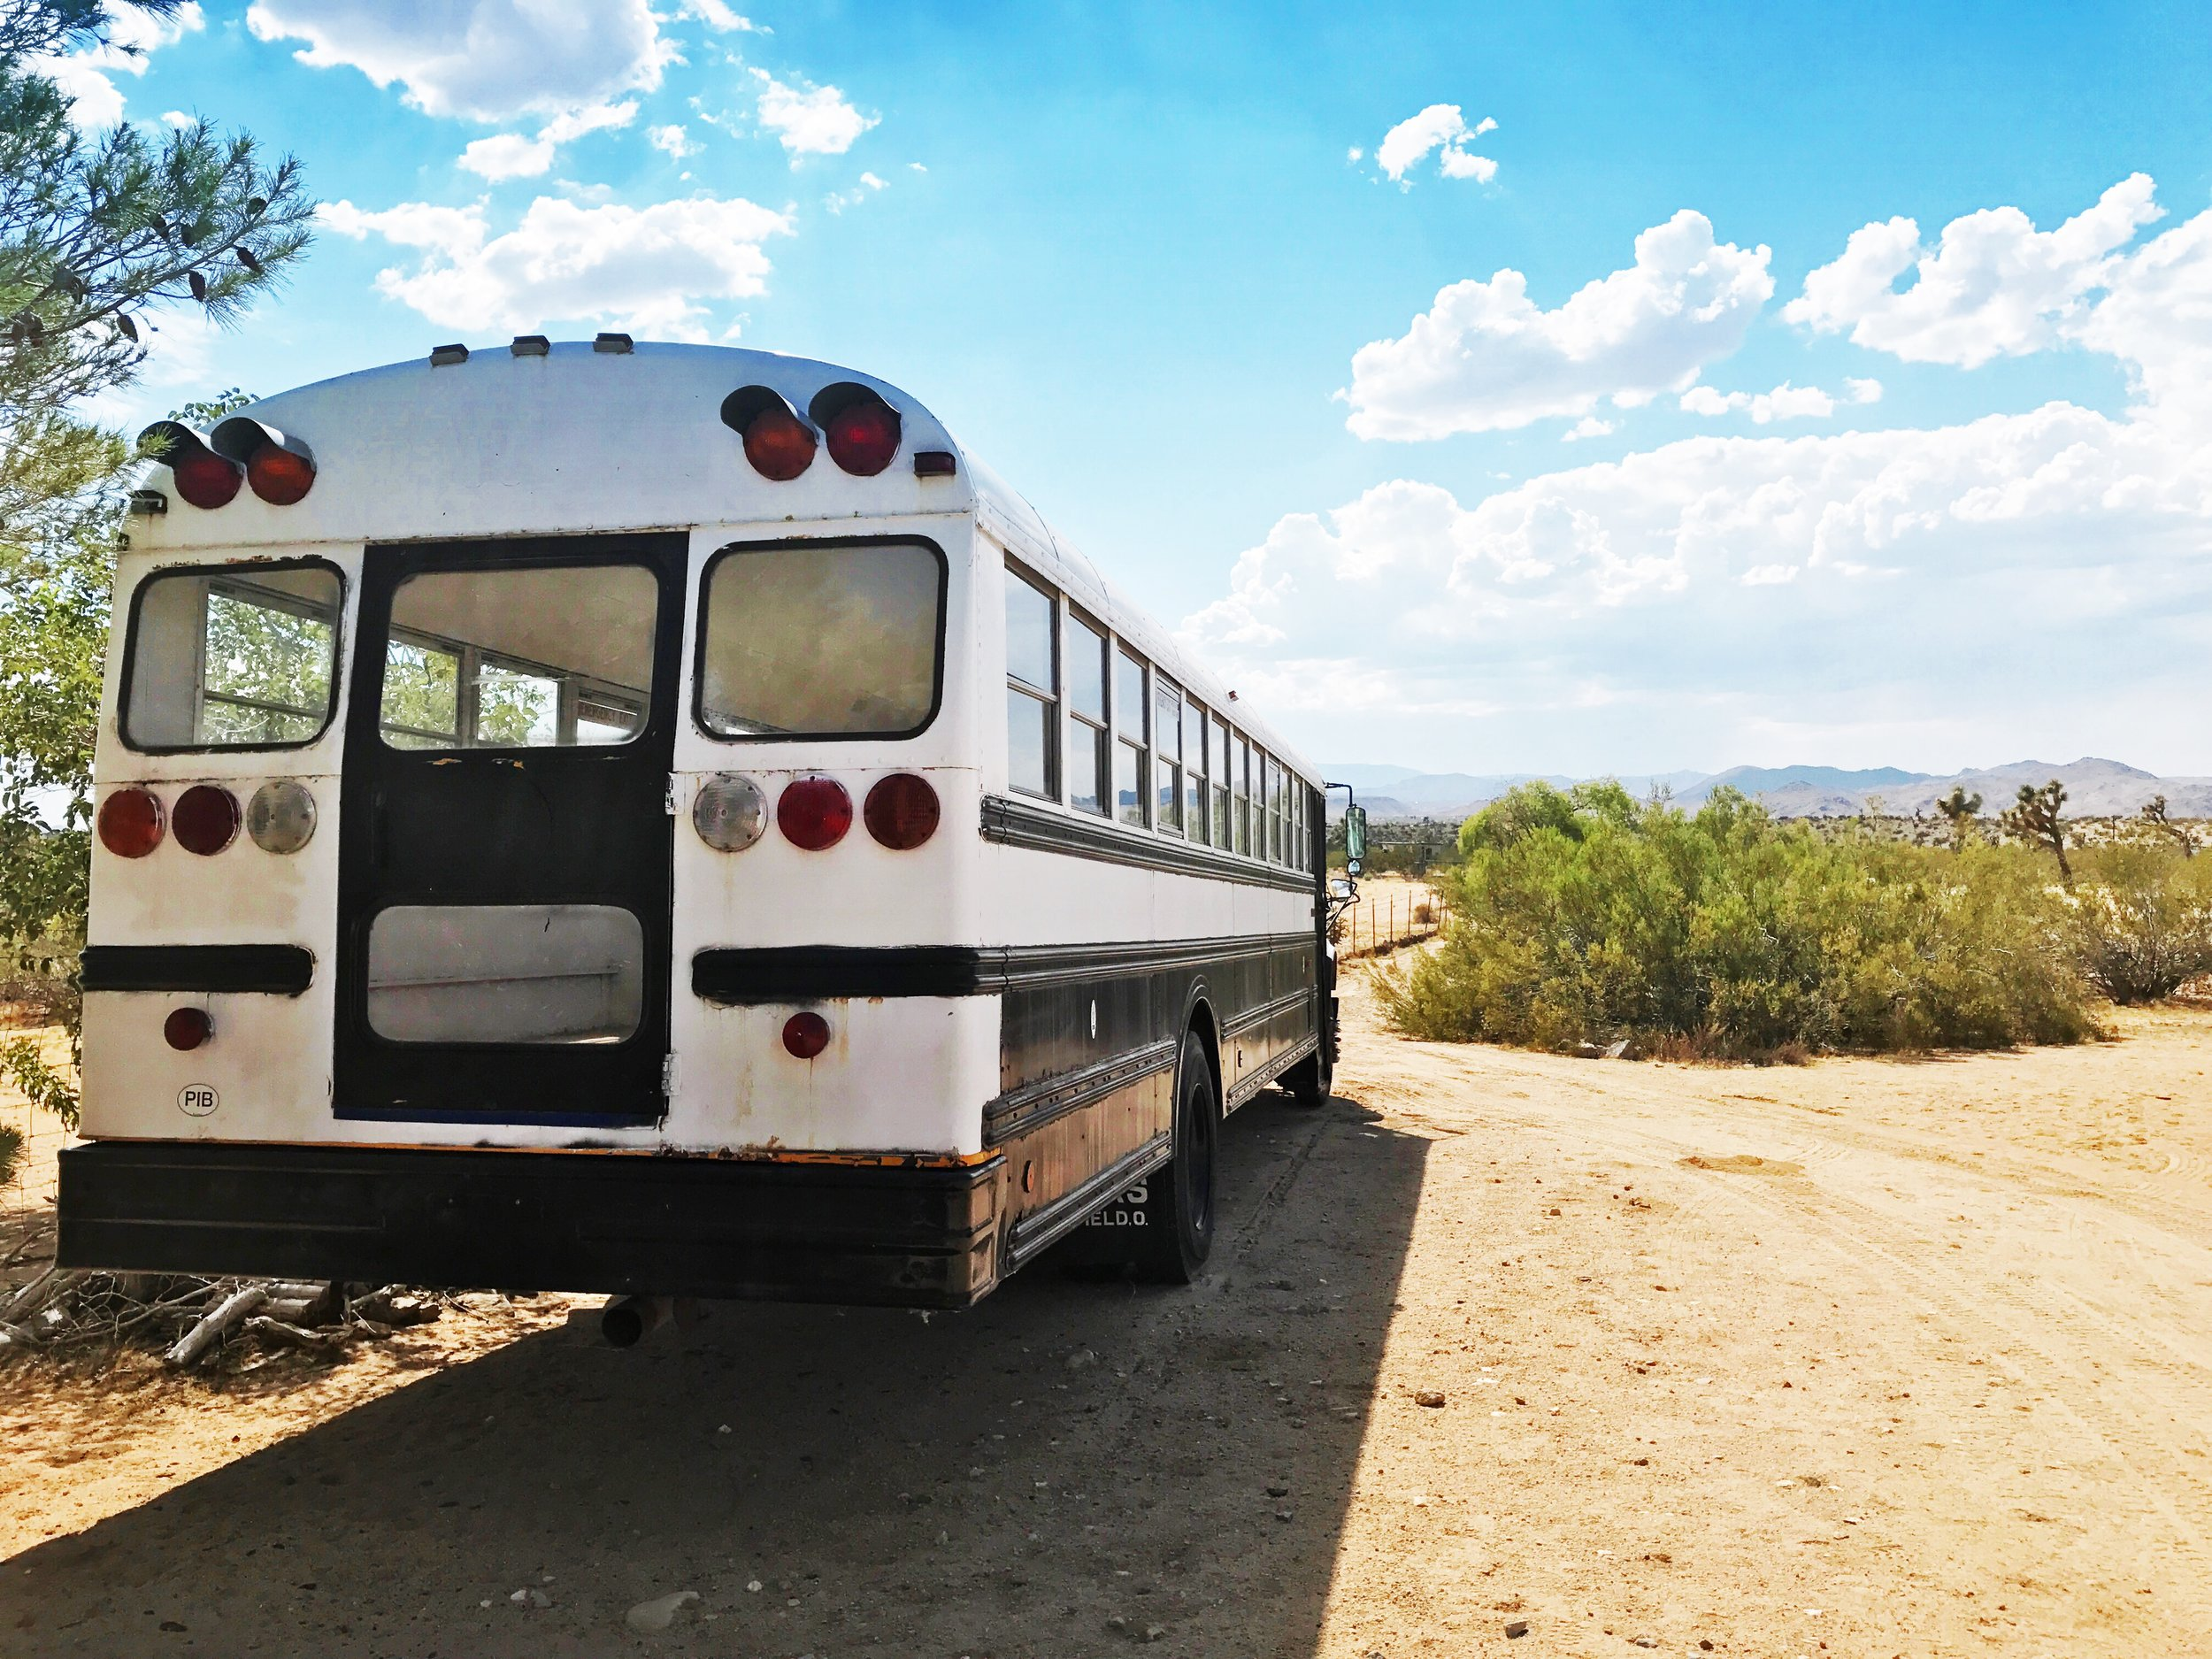 Desert Escape - Joshua TreeA magical Rock & Roll Themed oasis in the heart of the Mojave Desert, this 15 acre property in Joshua Tree boasts multiple unique locations including a school bus & a chic travel trailer.